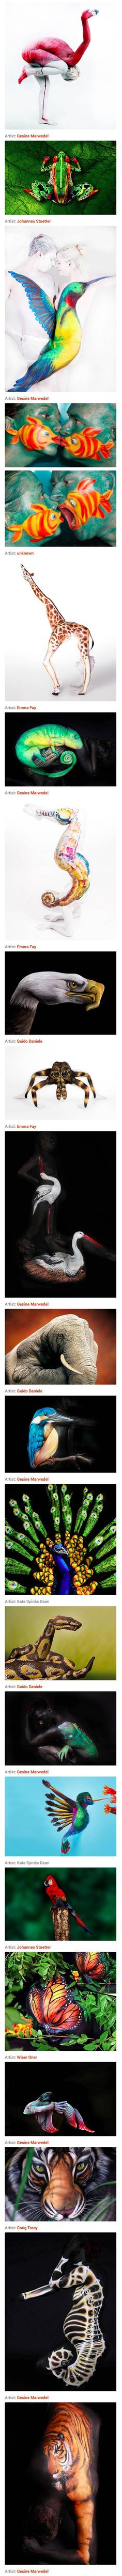 Many people feel an especially close connection with our animal brethren, which is probably a big part of why we find animal body art like this so appealing – these models, and the artists who paint on them, create a figurative representation of the relationship we share with all life.